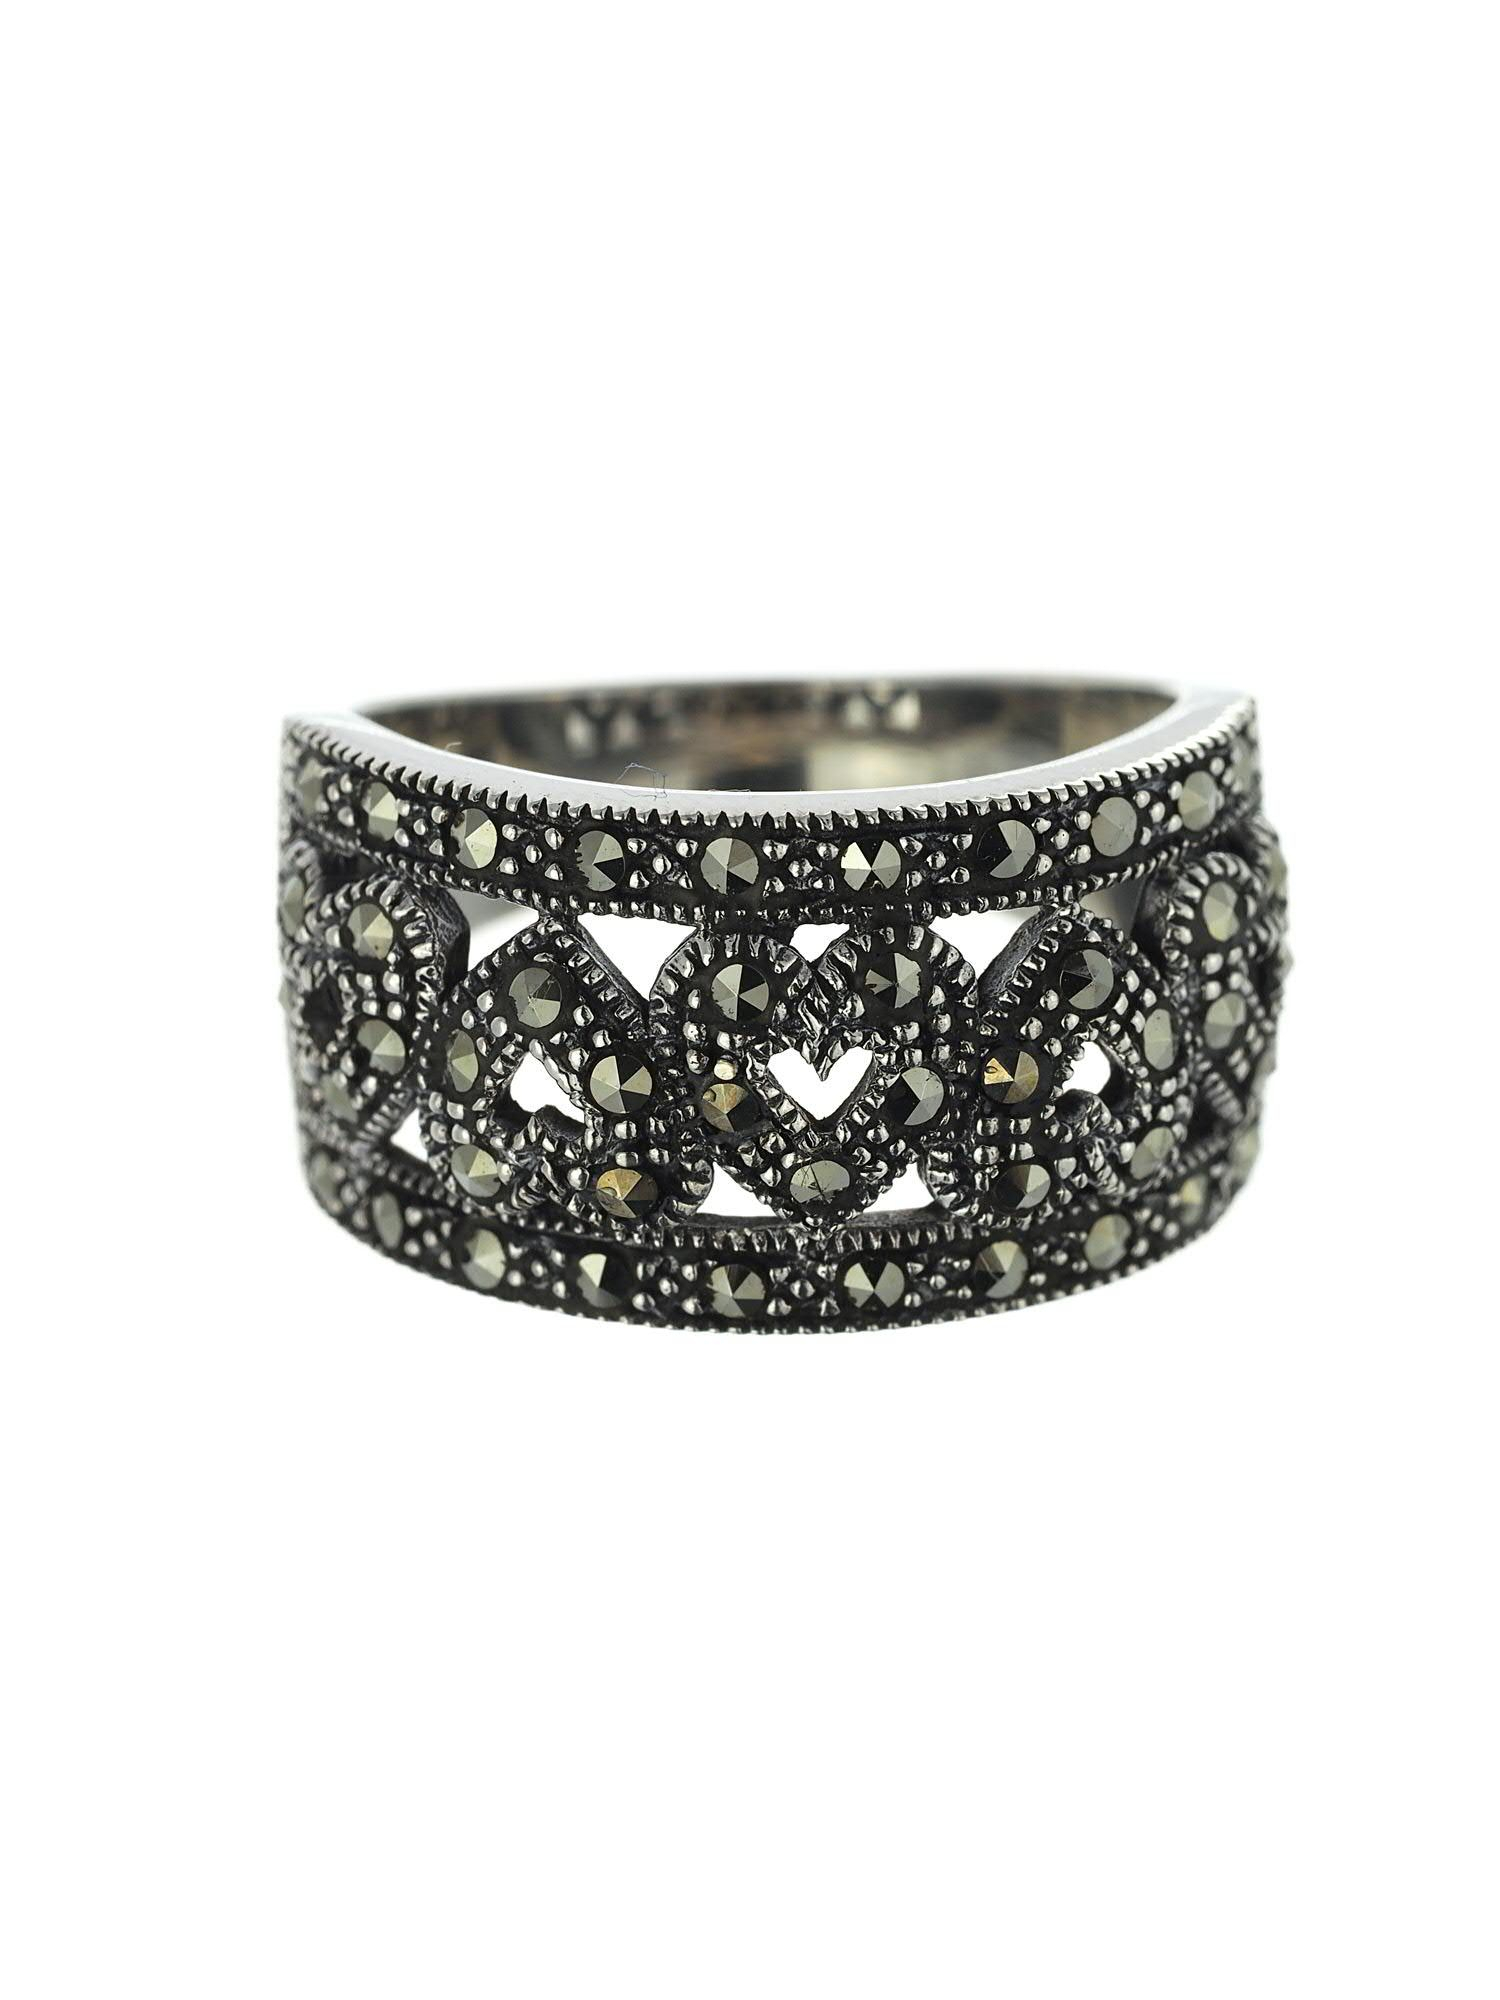 Sterling Silver And Marcasite Band Of Hearts Ring With Most Popular Band Of Hearts Rings (Gallery 22 of 25)